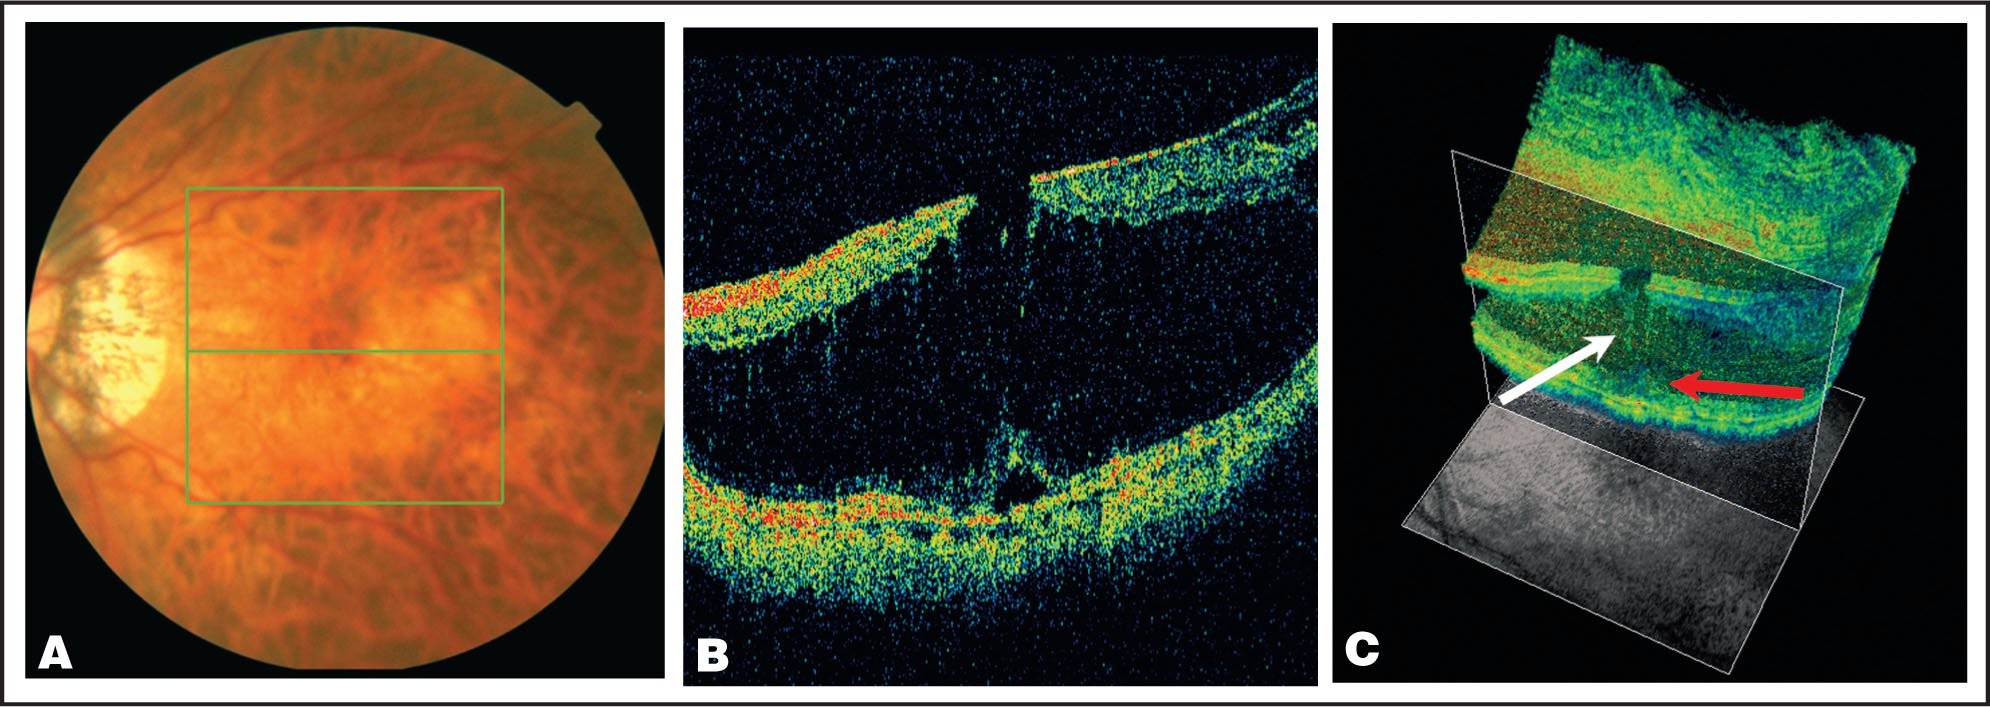 (A) Optical Coherence Tomography (OCT) Fundus Photograph of Case 3 Showing the Marked Myopic Tessellated Fundus. The Macula Looks Atrophic with Surrounding Neurosensory Elevation. (B) Two-Dimensional OCT Showing Macular Schisis. (C) The Reconstructed Three-Dimensional OCT Image Further Demonstrates the Lamellar Macular Hole. The White Arrow Points to Continued Attachment Between the Intraretinal Layers. The Red Arrow Points to the Elevation of the Posterior Layer of the Retina.